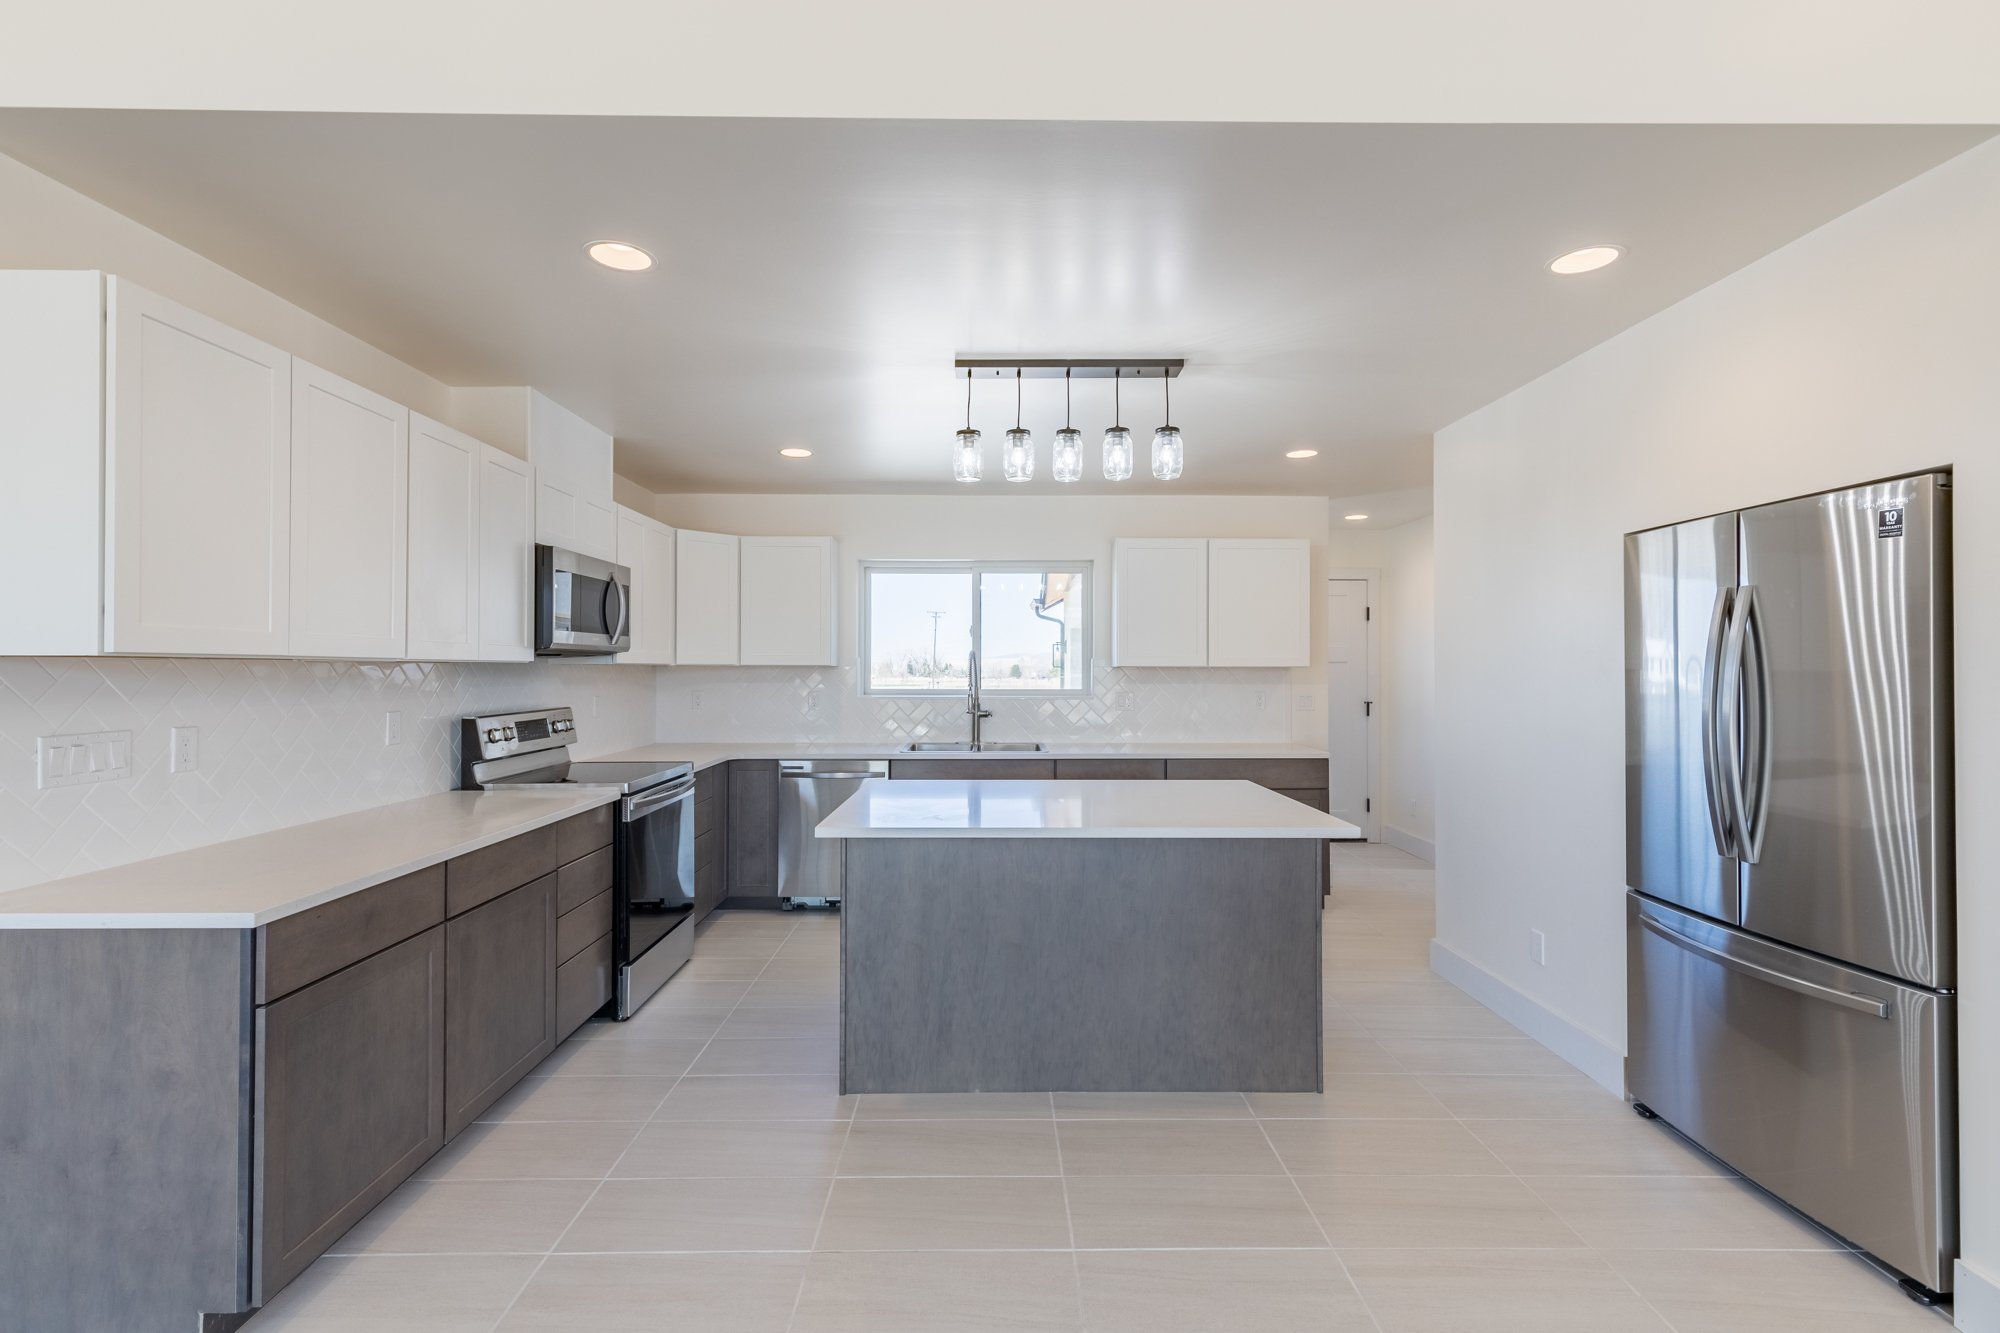 Custom Kitchen with Center Island - TBD Highway 550 Montrose, CO 81403 - Atha Team New Construction Real Estate